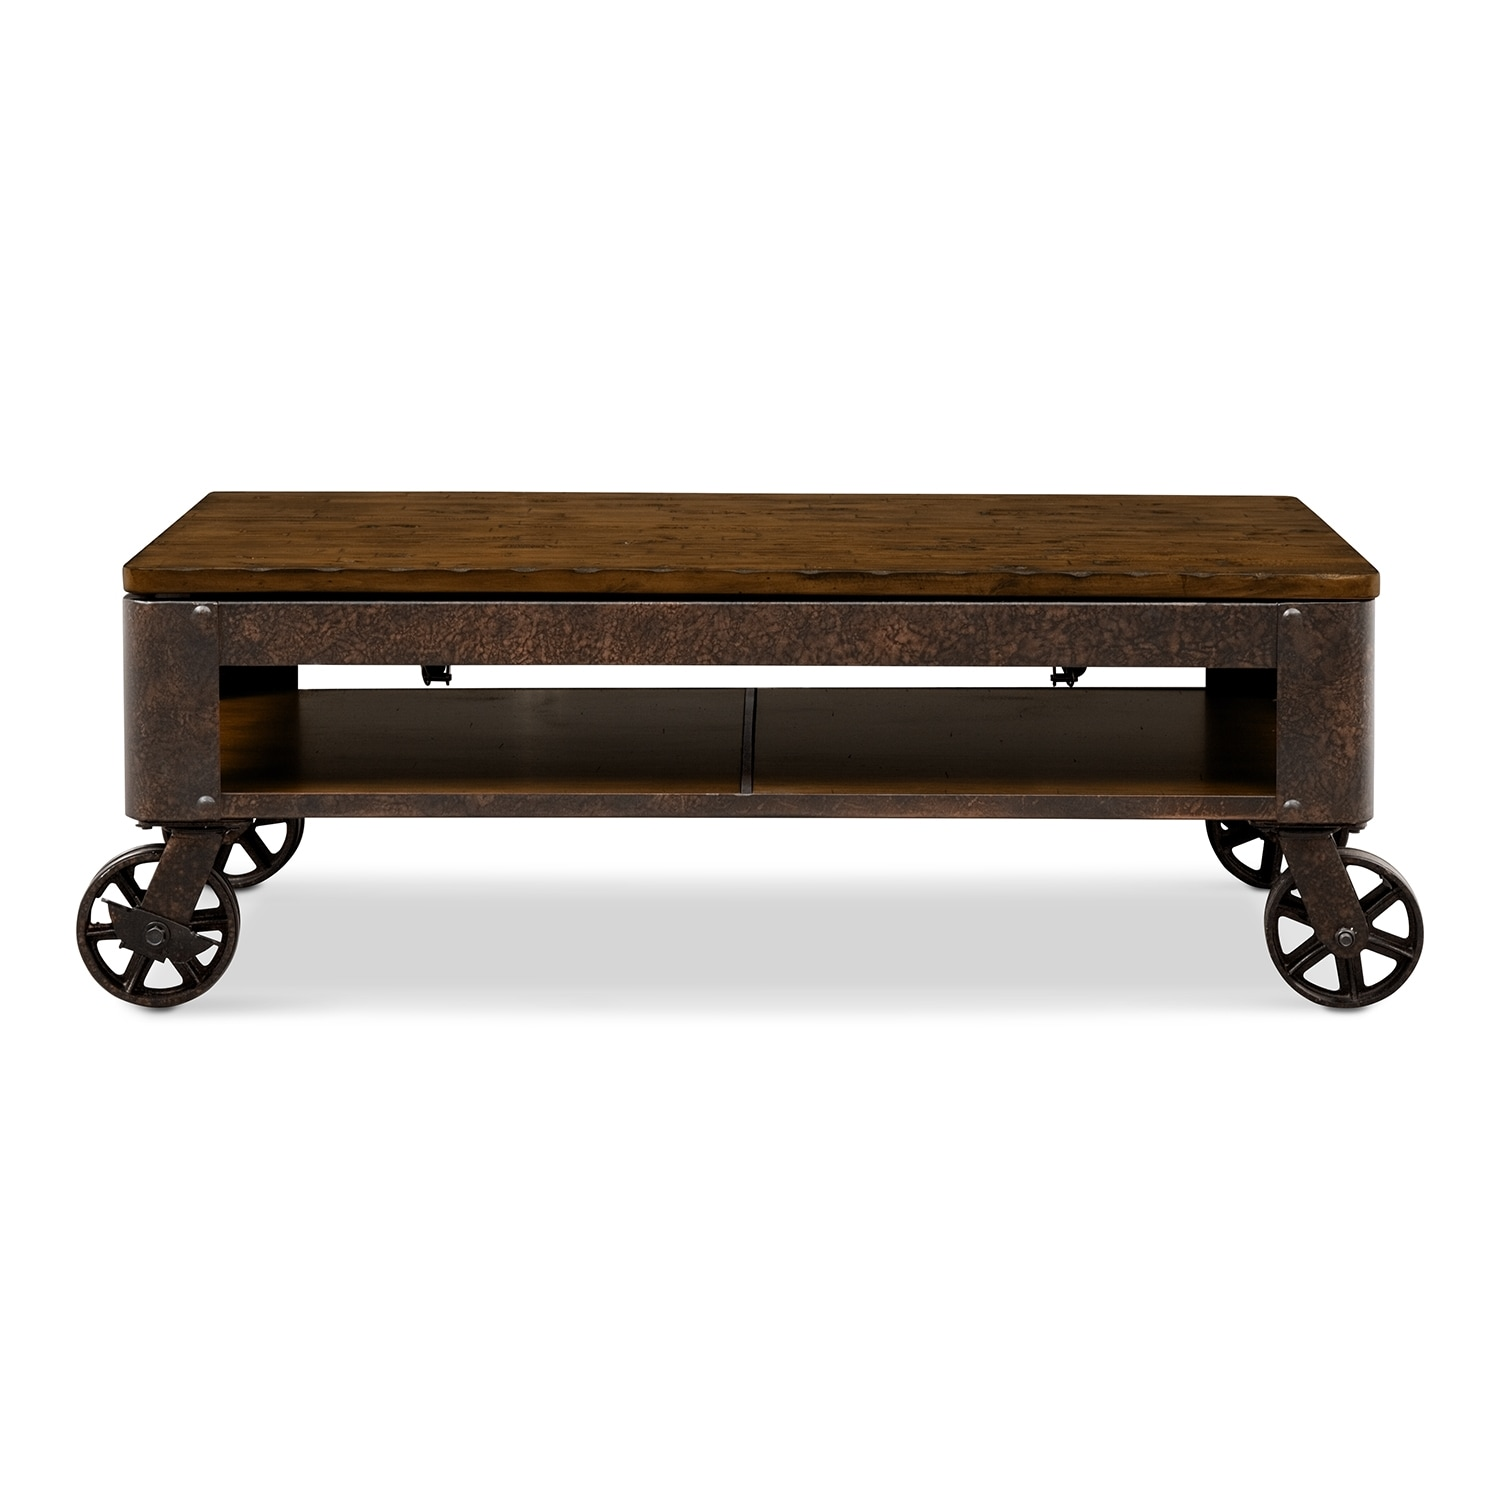 Accent and Occasional Furniture - Shortline Lift-Top Cocktail Table - Distressed Pine  sc 1 st  Value City Furniture & Shortline Lift-Top Cocktail Table - Distressed Pine | Value City ...